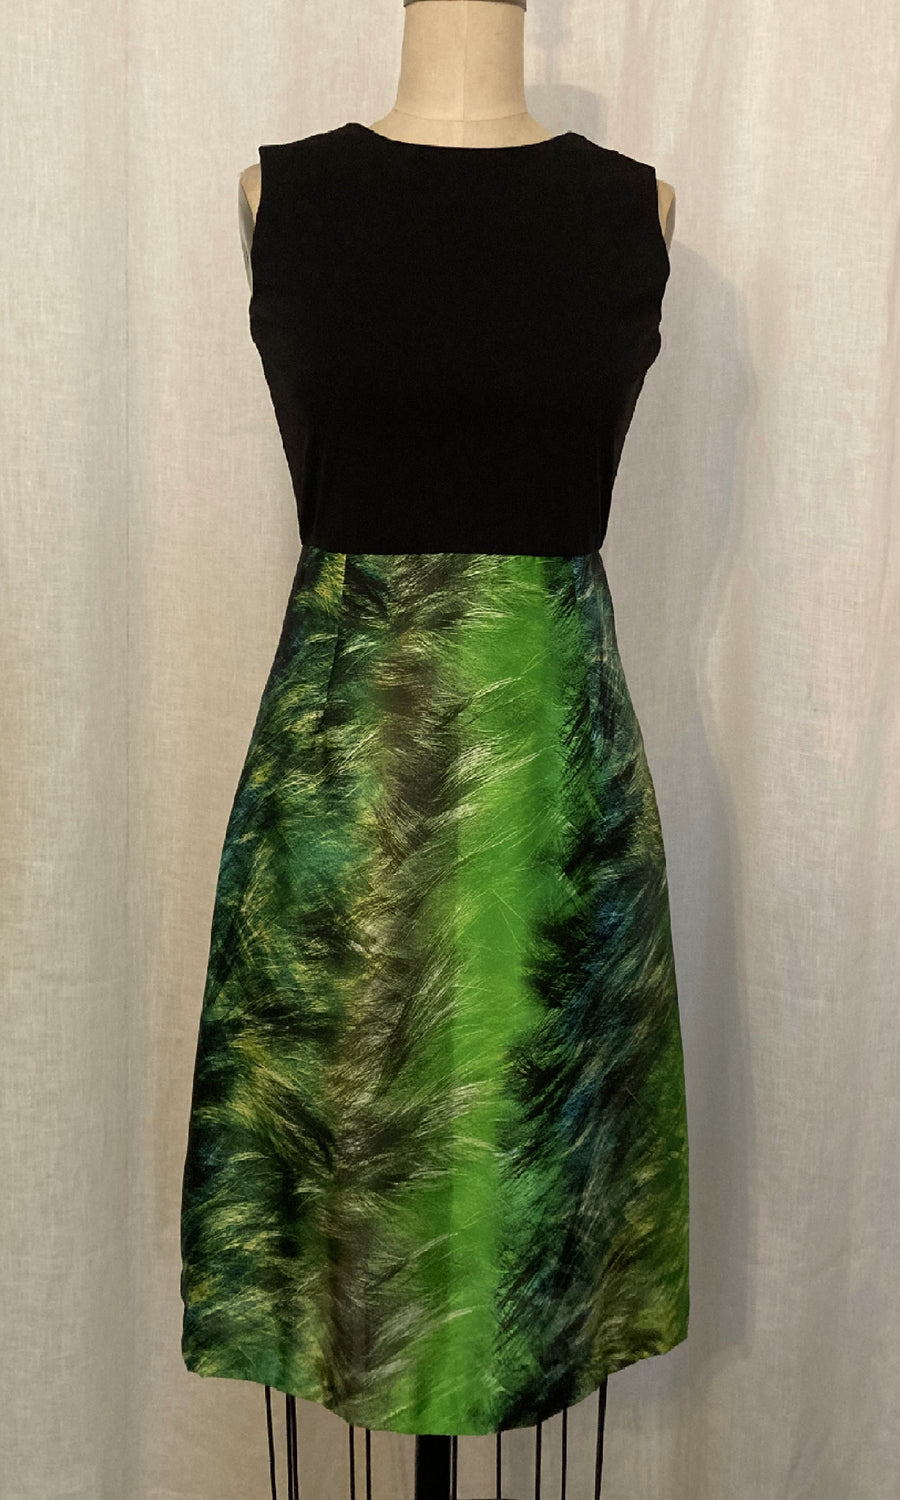 Black Knit and Green Abstract Print Dress, size X-small and Small